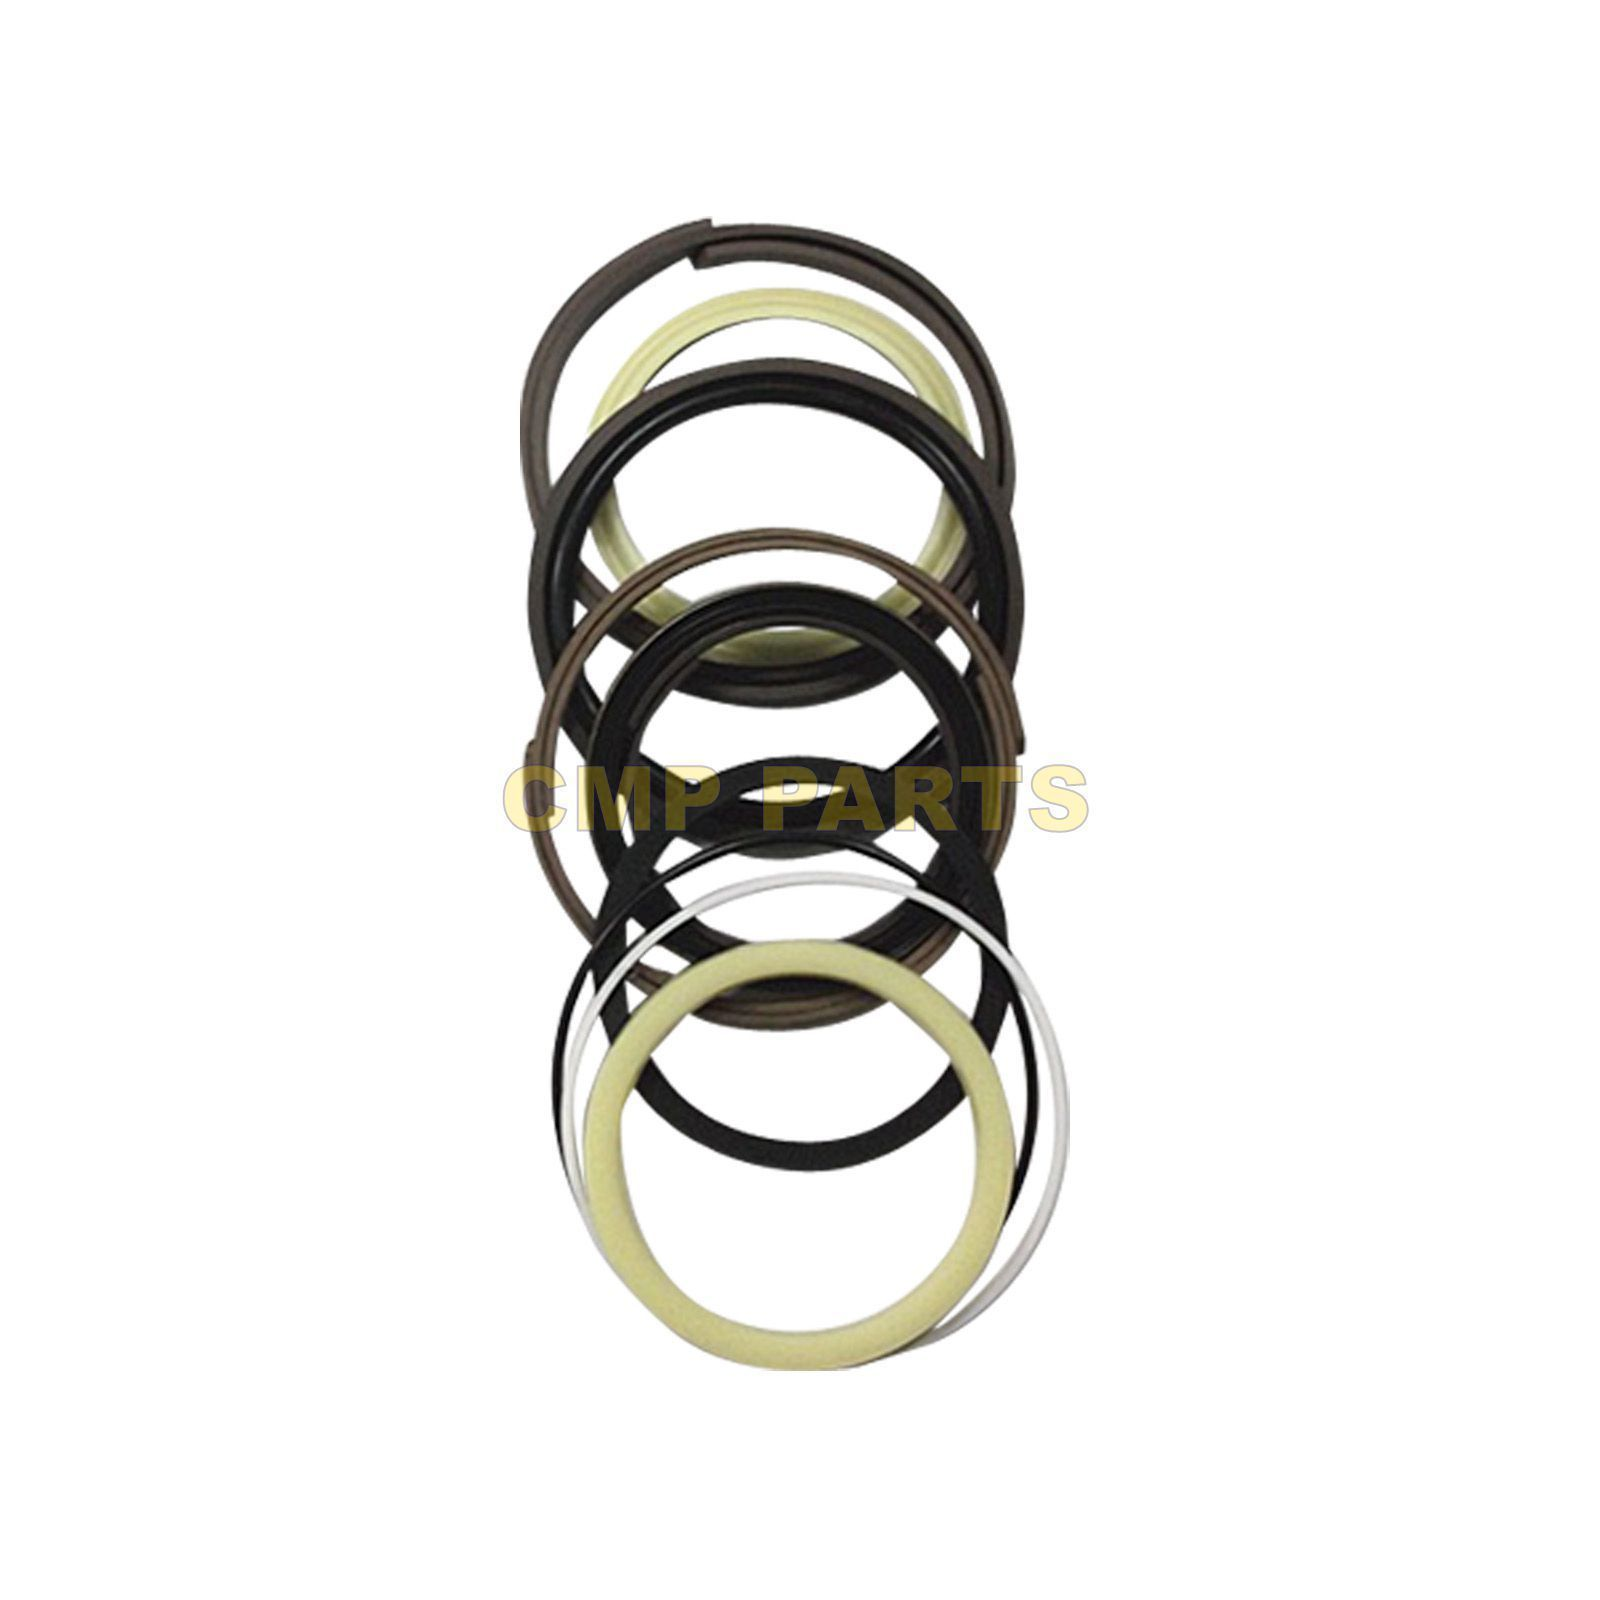 PC400-5 boom hydraulic cylinder seal kit for and 50 similar items